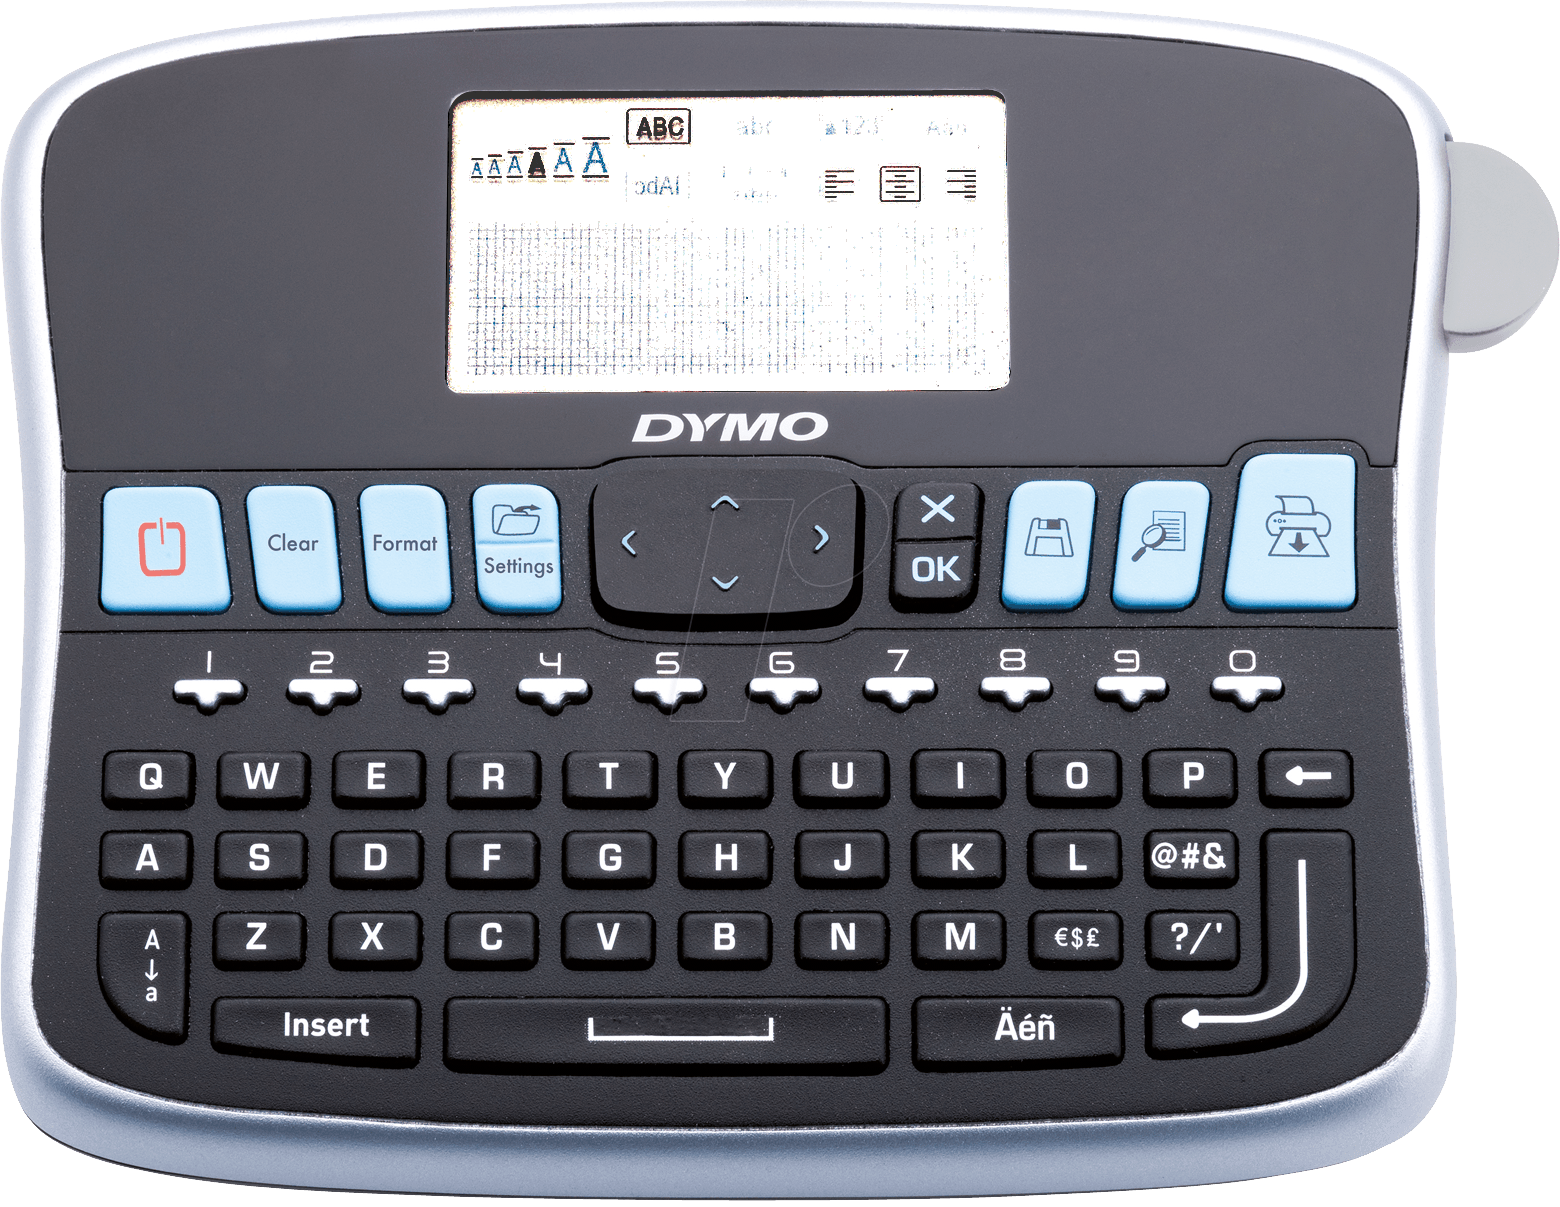 Dymo 360D Label Printer